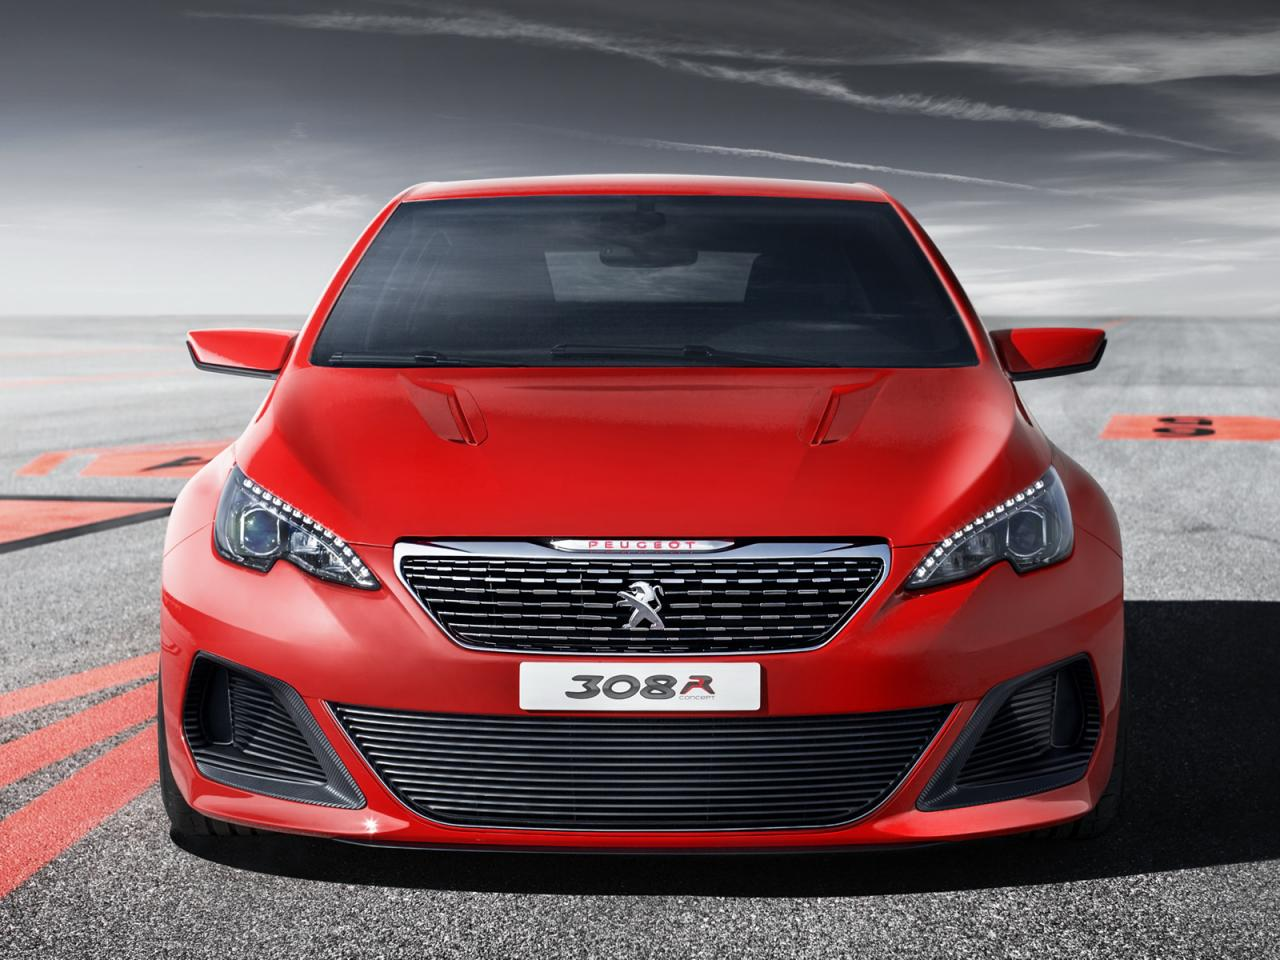 peugeot 308 r concept revealed gets rcz r engine performancedrive. Black Bedroom Furniture Sets. Home Design Ideas